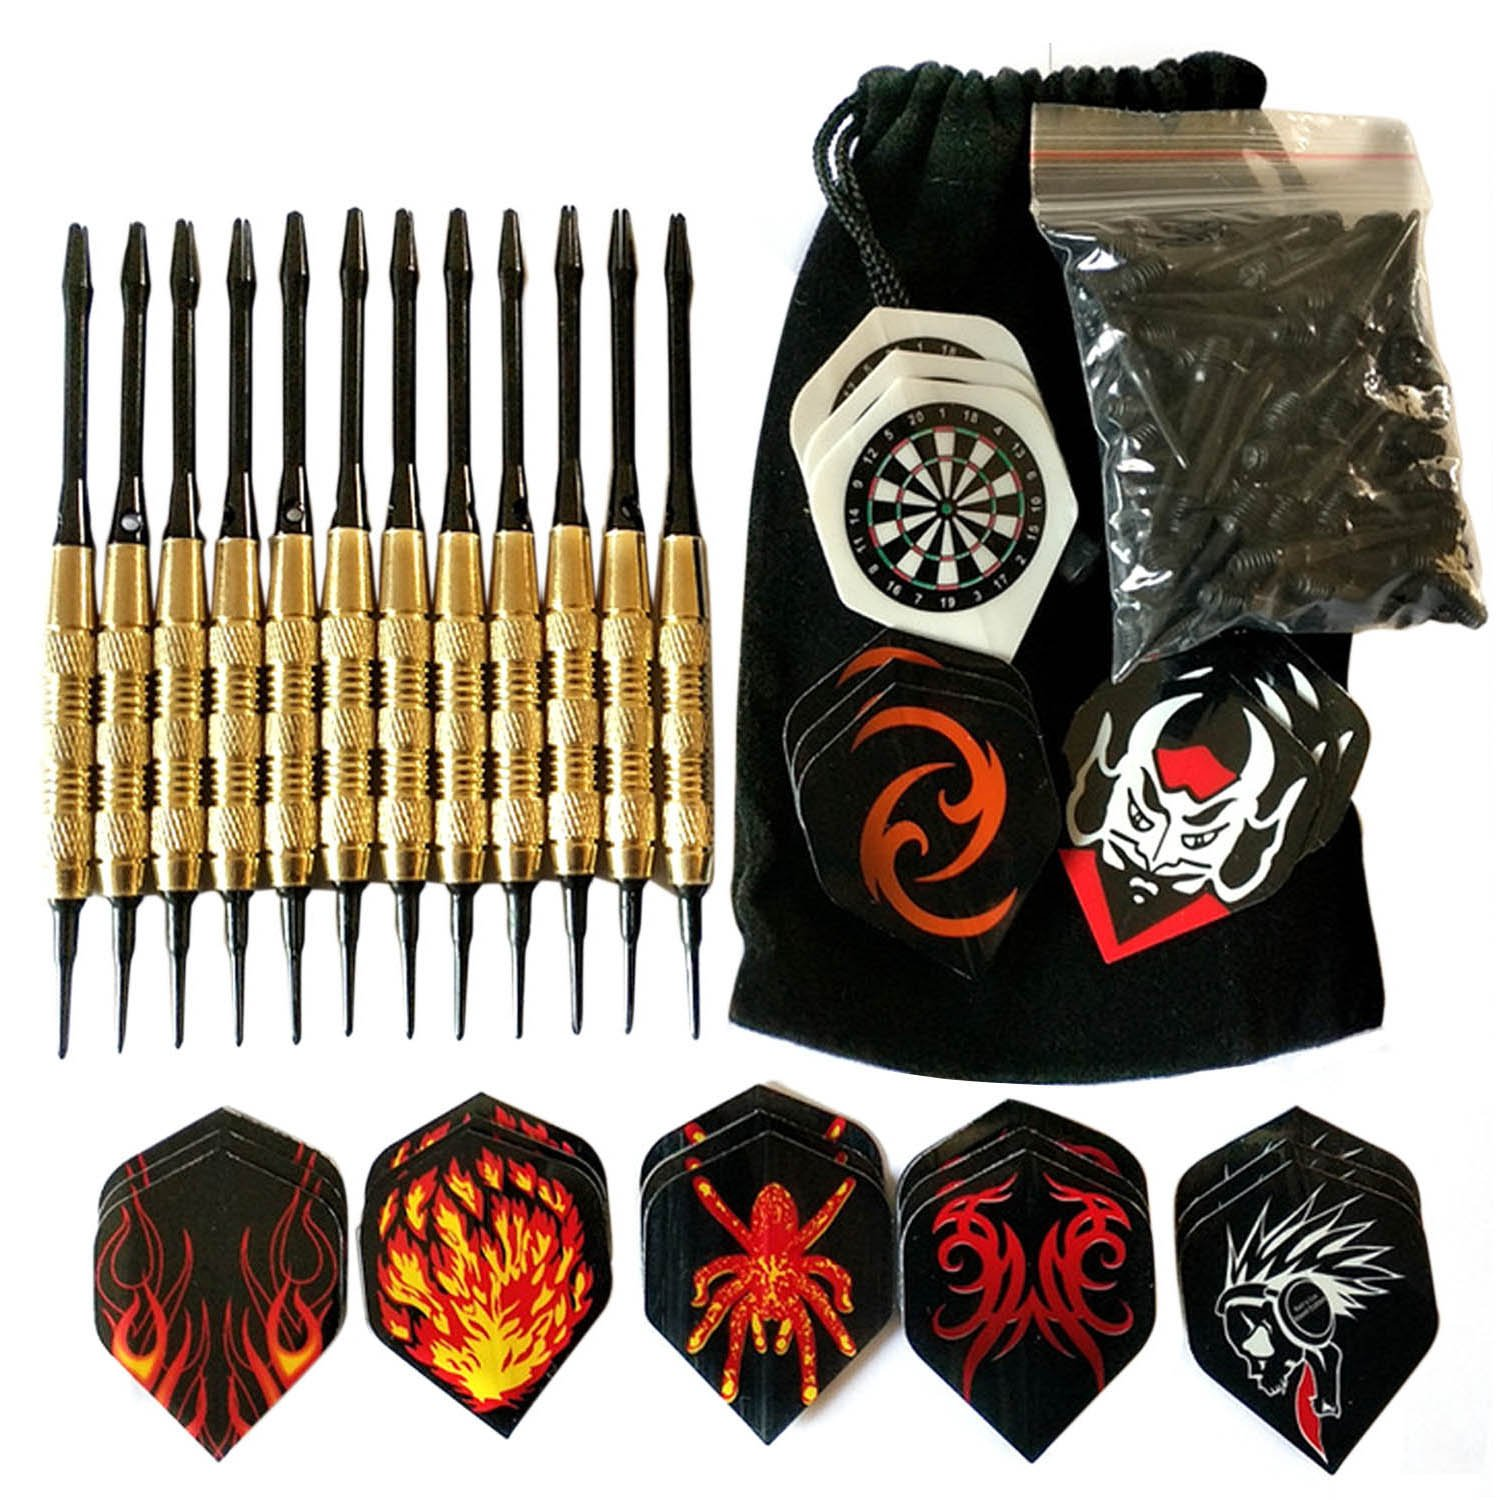 12 PCS Professional 18g 158mm Copper-plated Iron Soft Tip Darts + 100 Replacement Tips + 12 Extra Fligts Set with Storage Bag Random Styles